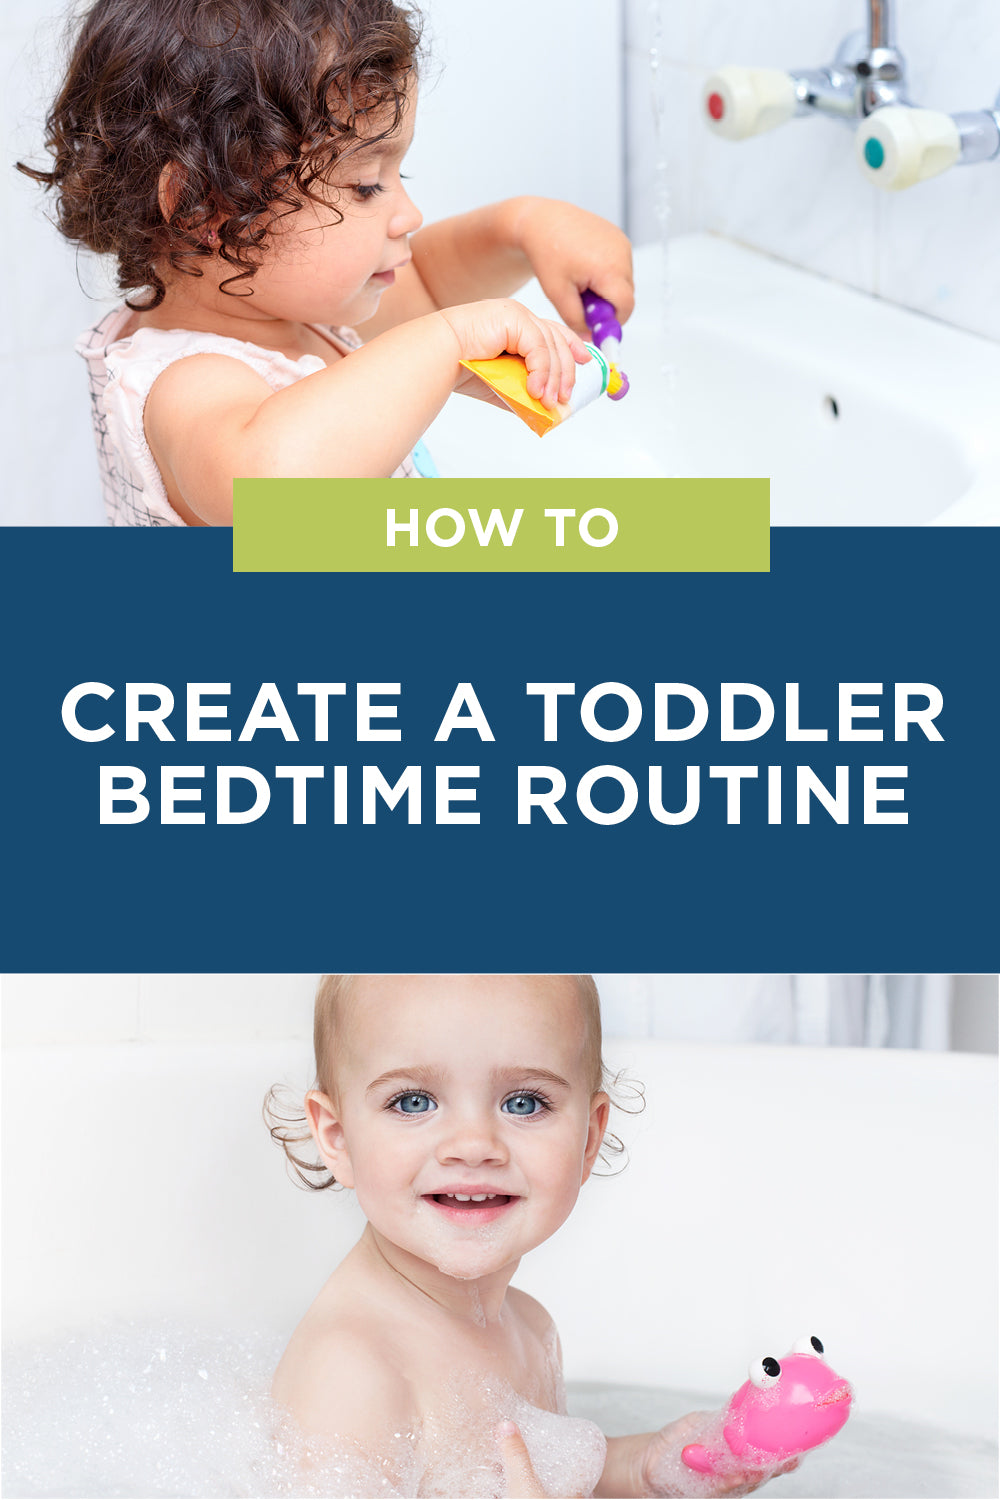 how to create a toddler bedtime routine they'll remember